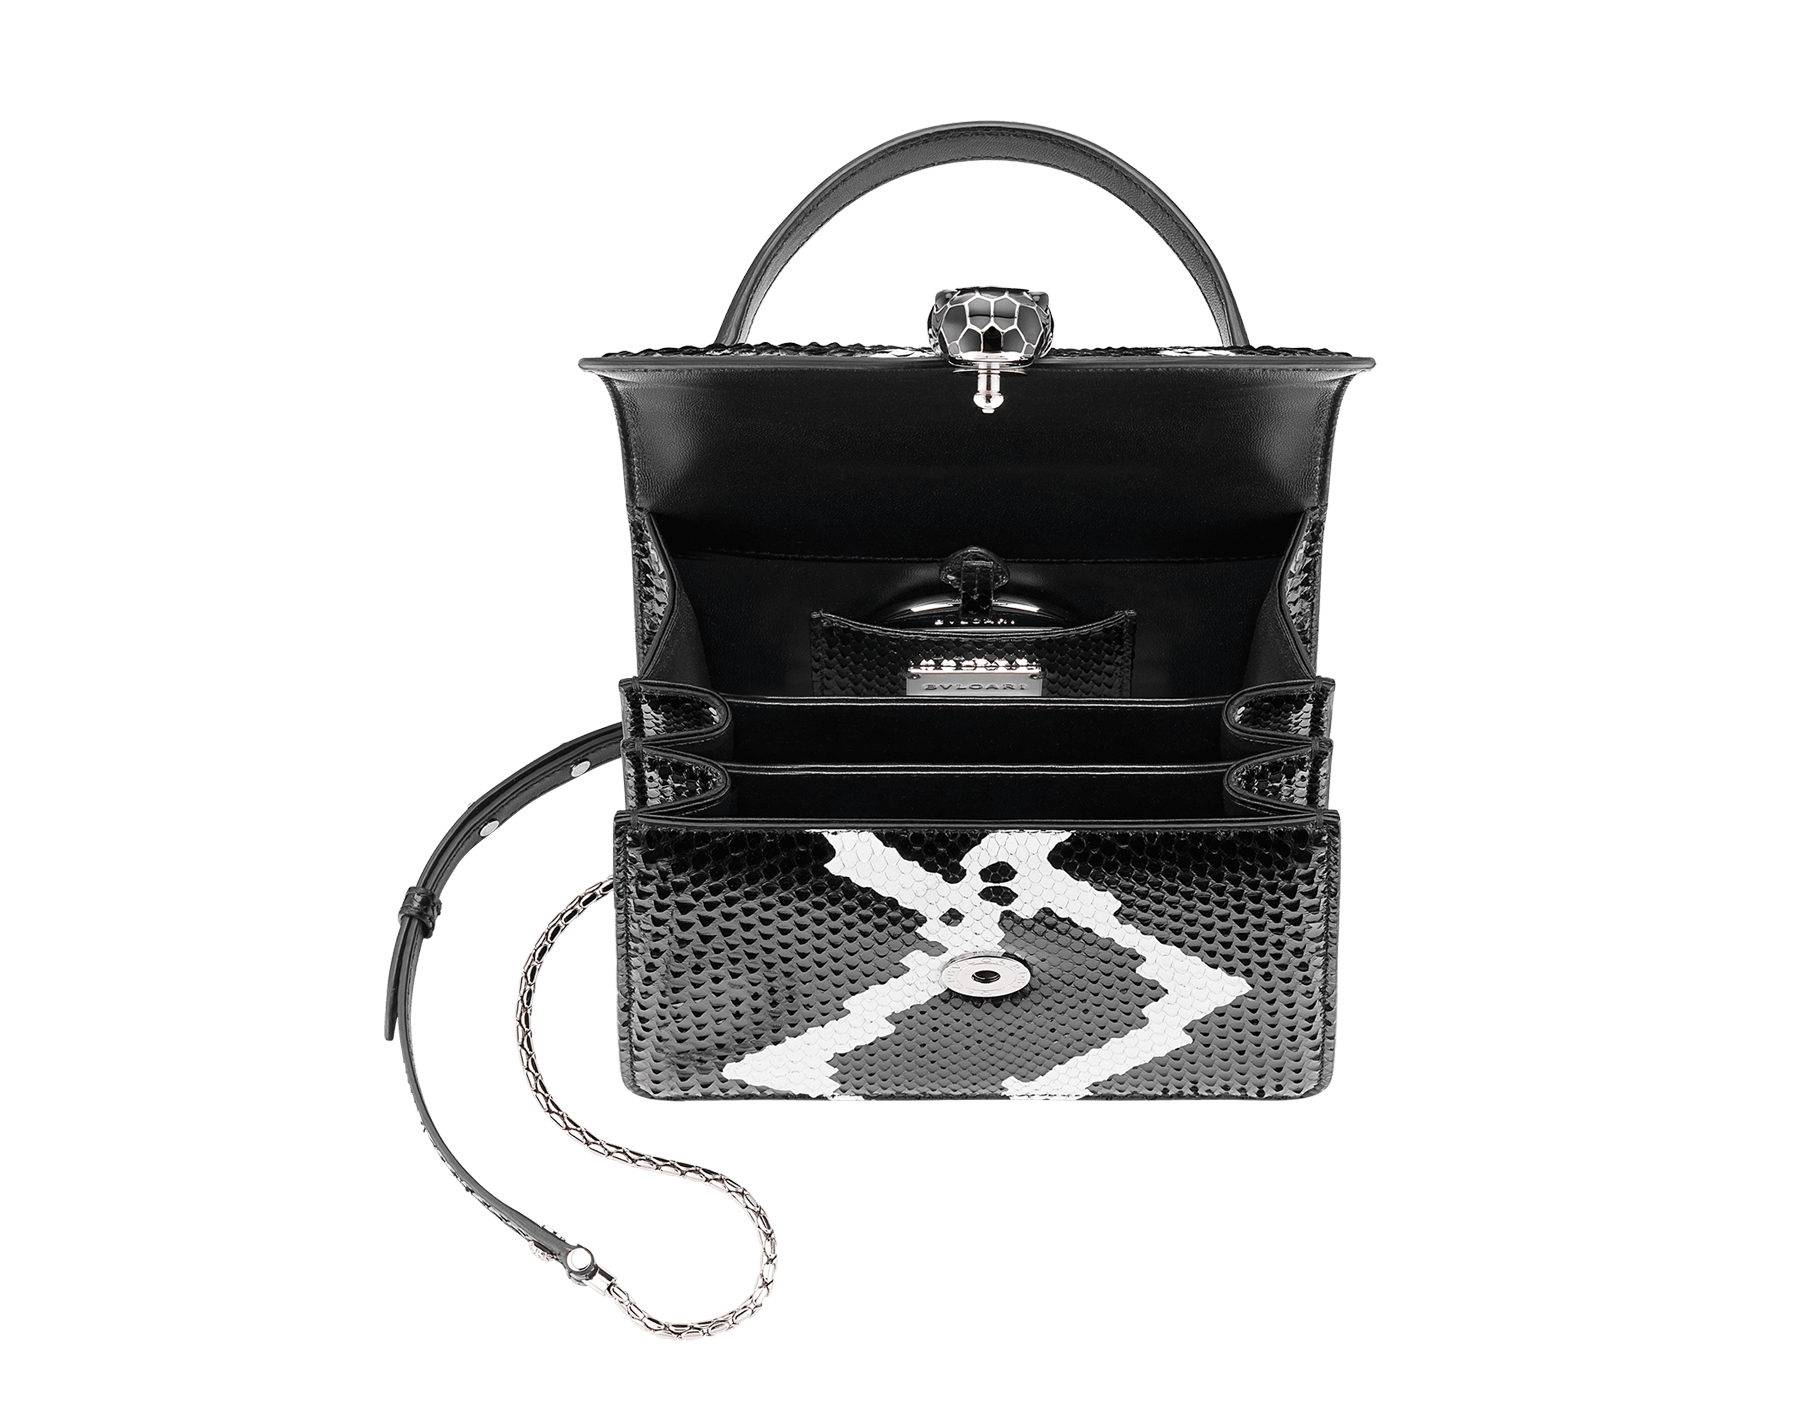 Serpenti Forever crossbody bag in black and white python skin with Whitethunder motif. Snakehead closure in shiny palladium plated brass decorated with black enamel, and black onyx eyes. 752-Pa image 4